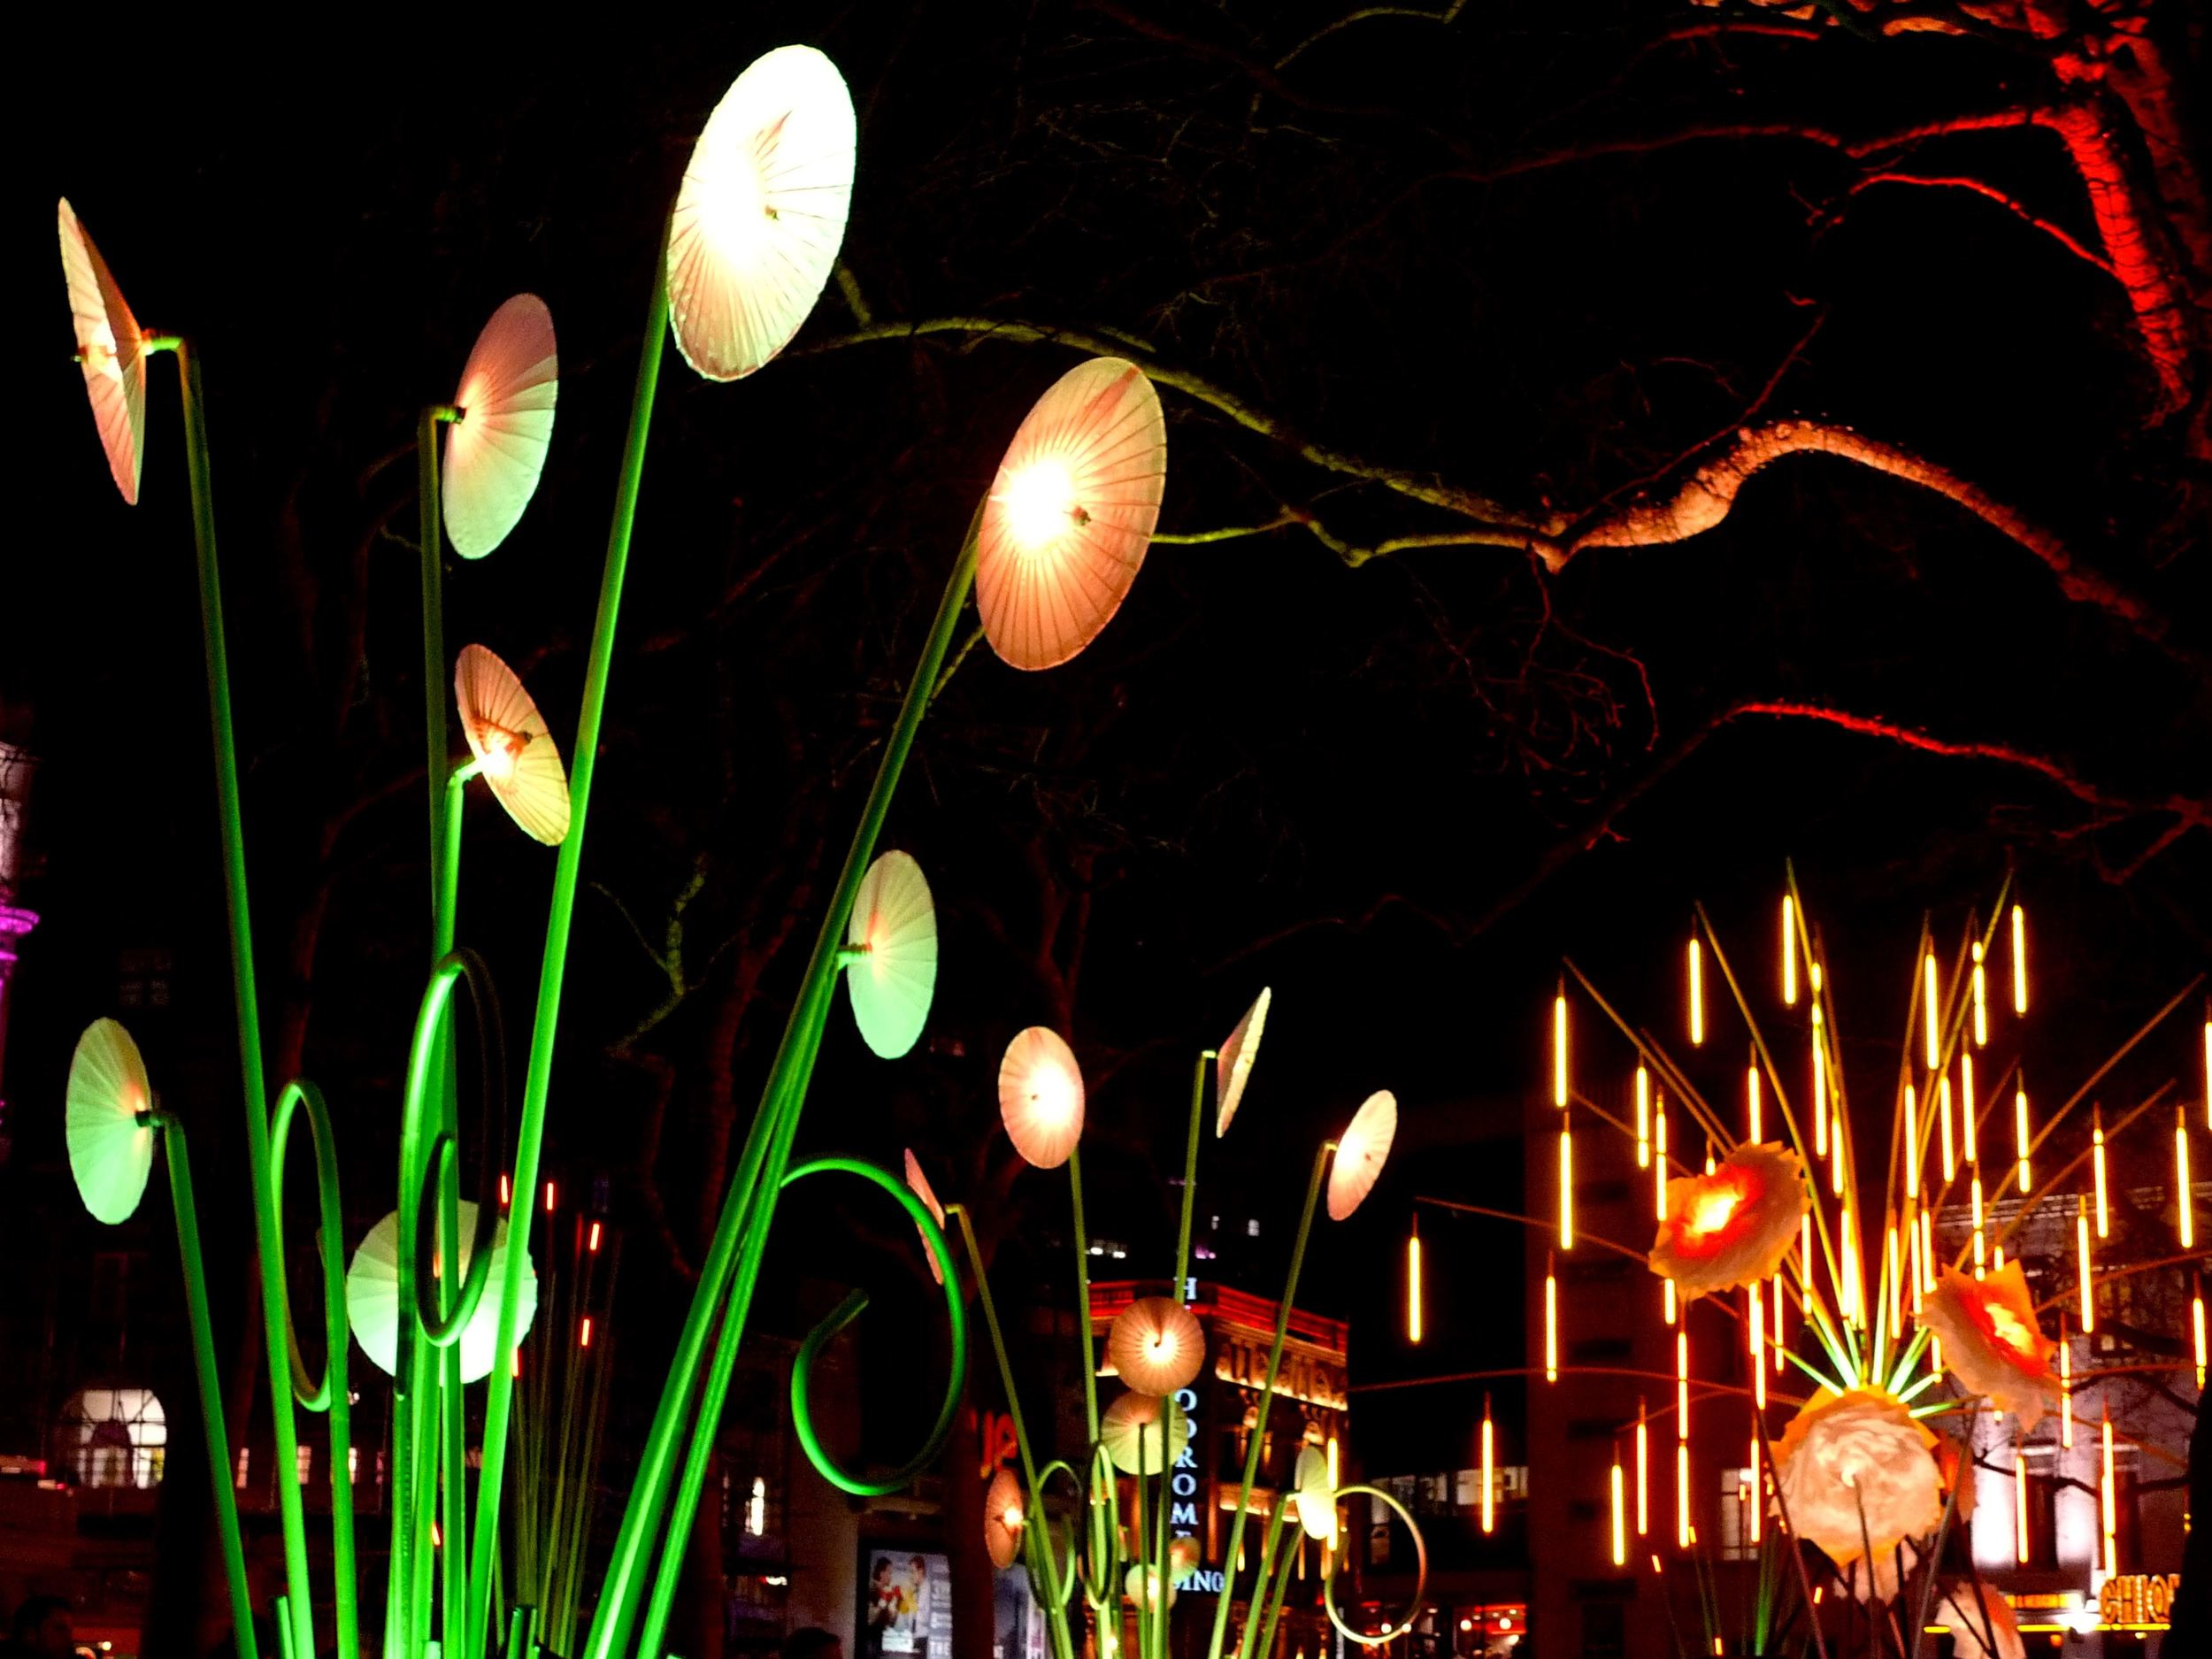 THE GARDEN OF LIGHT, TILT